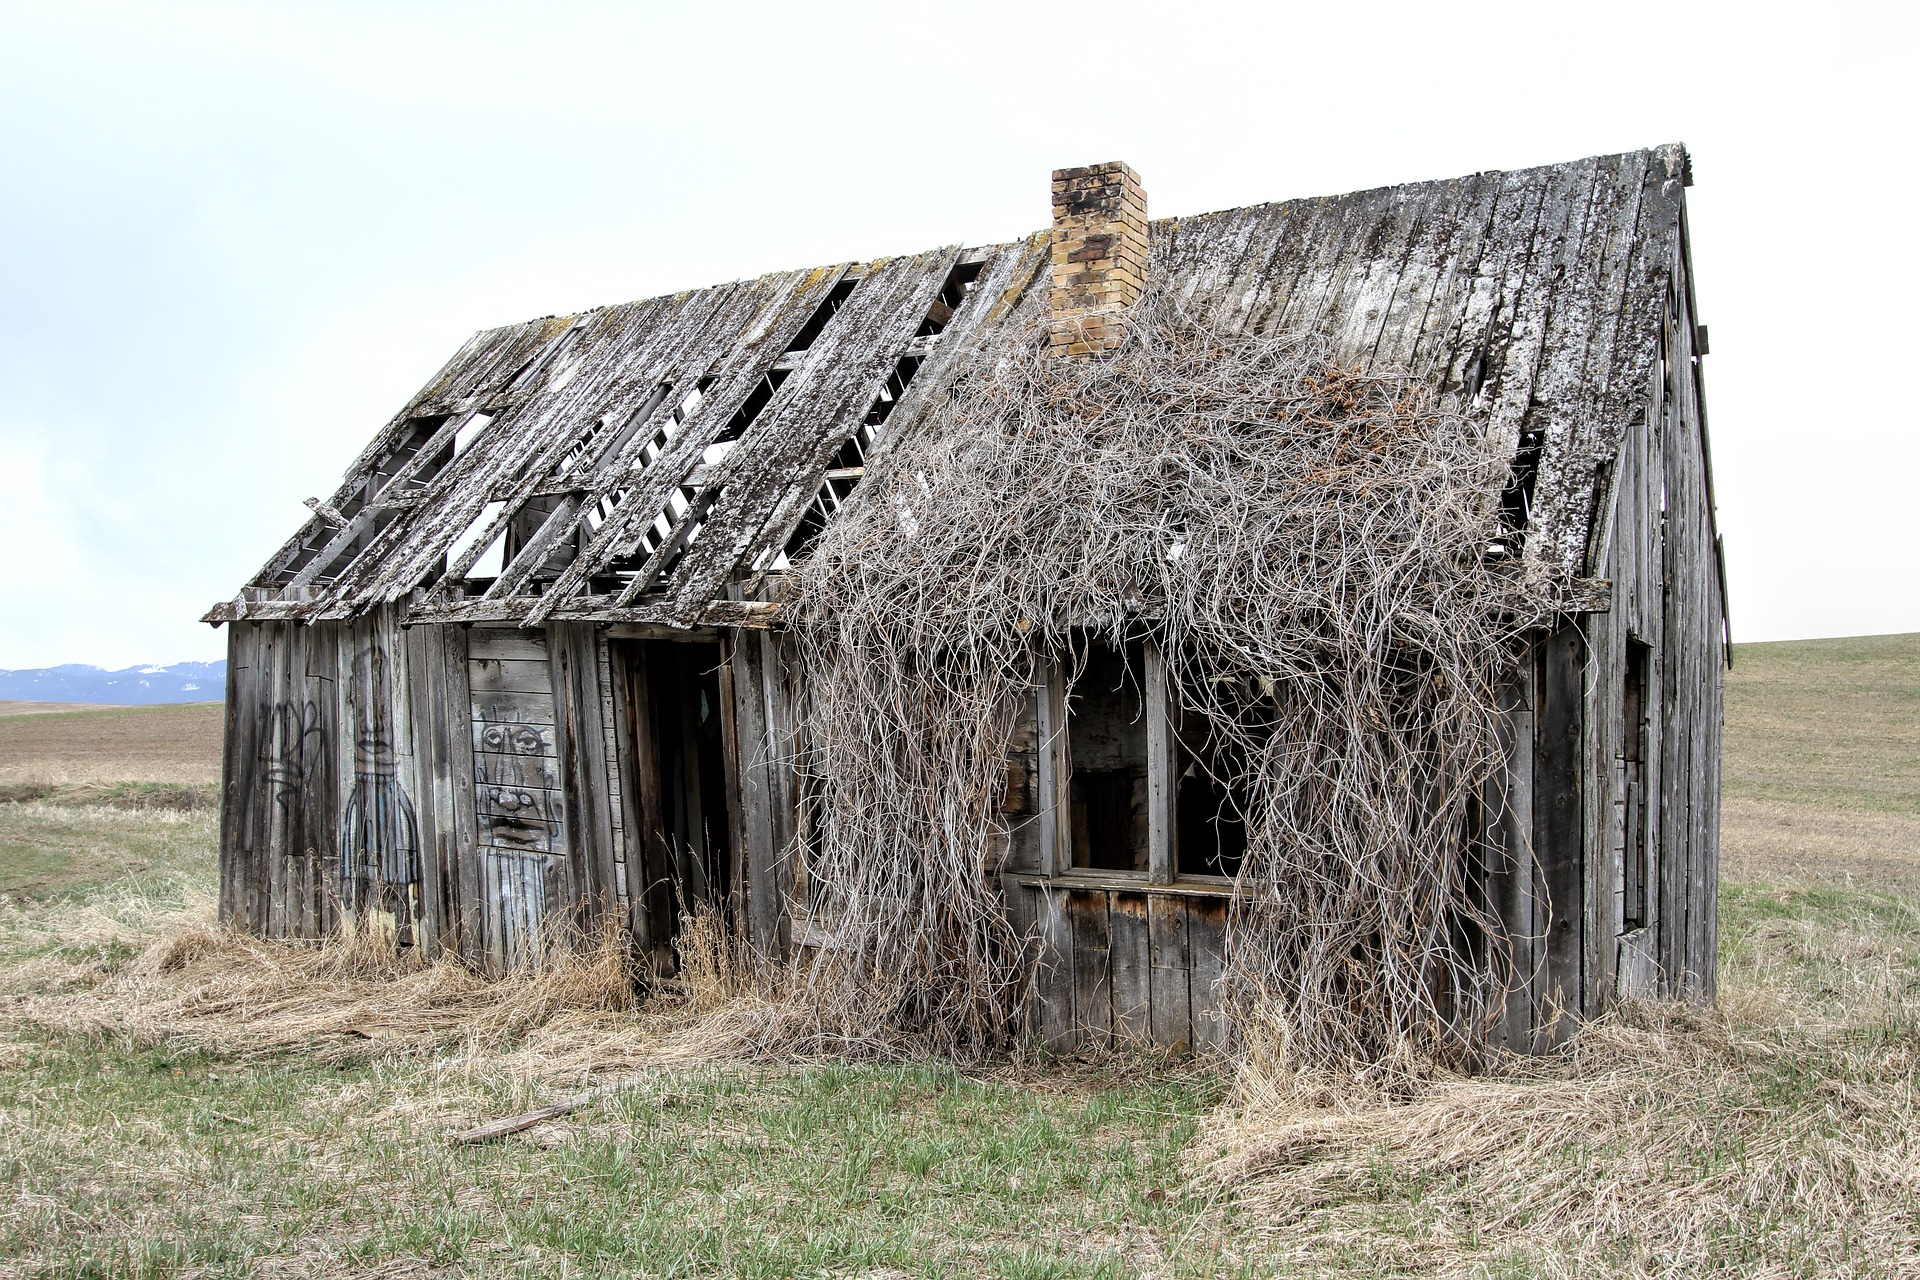 old-farm-house-2096642_1920.jpg